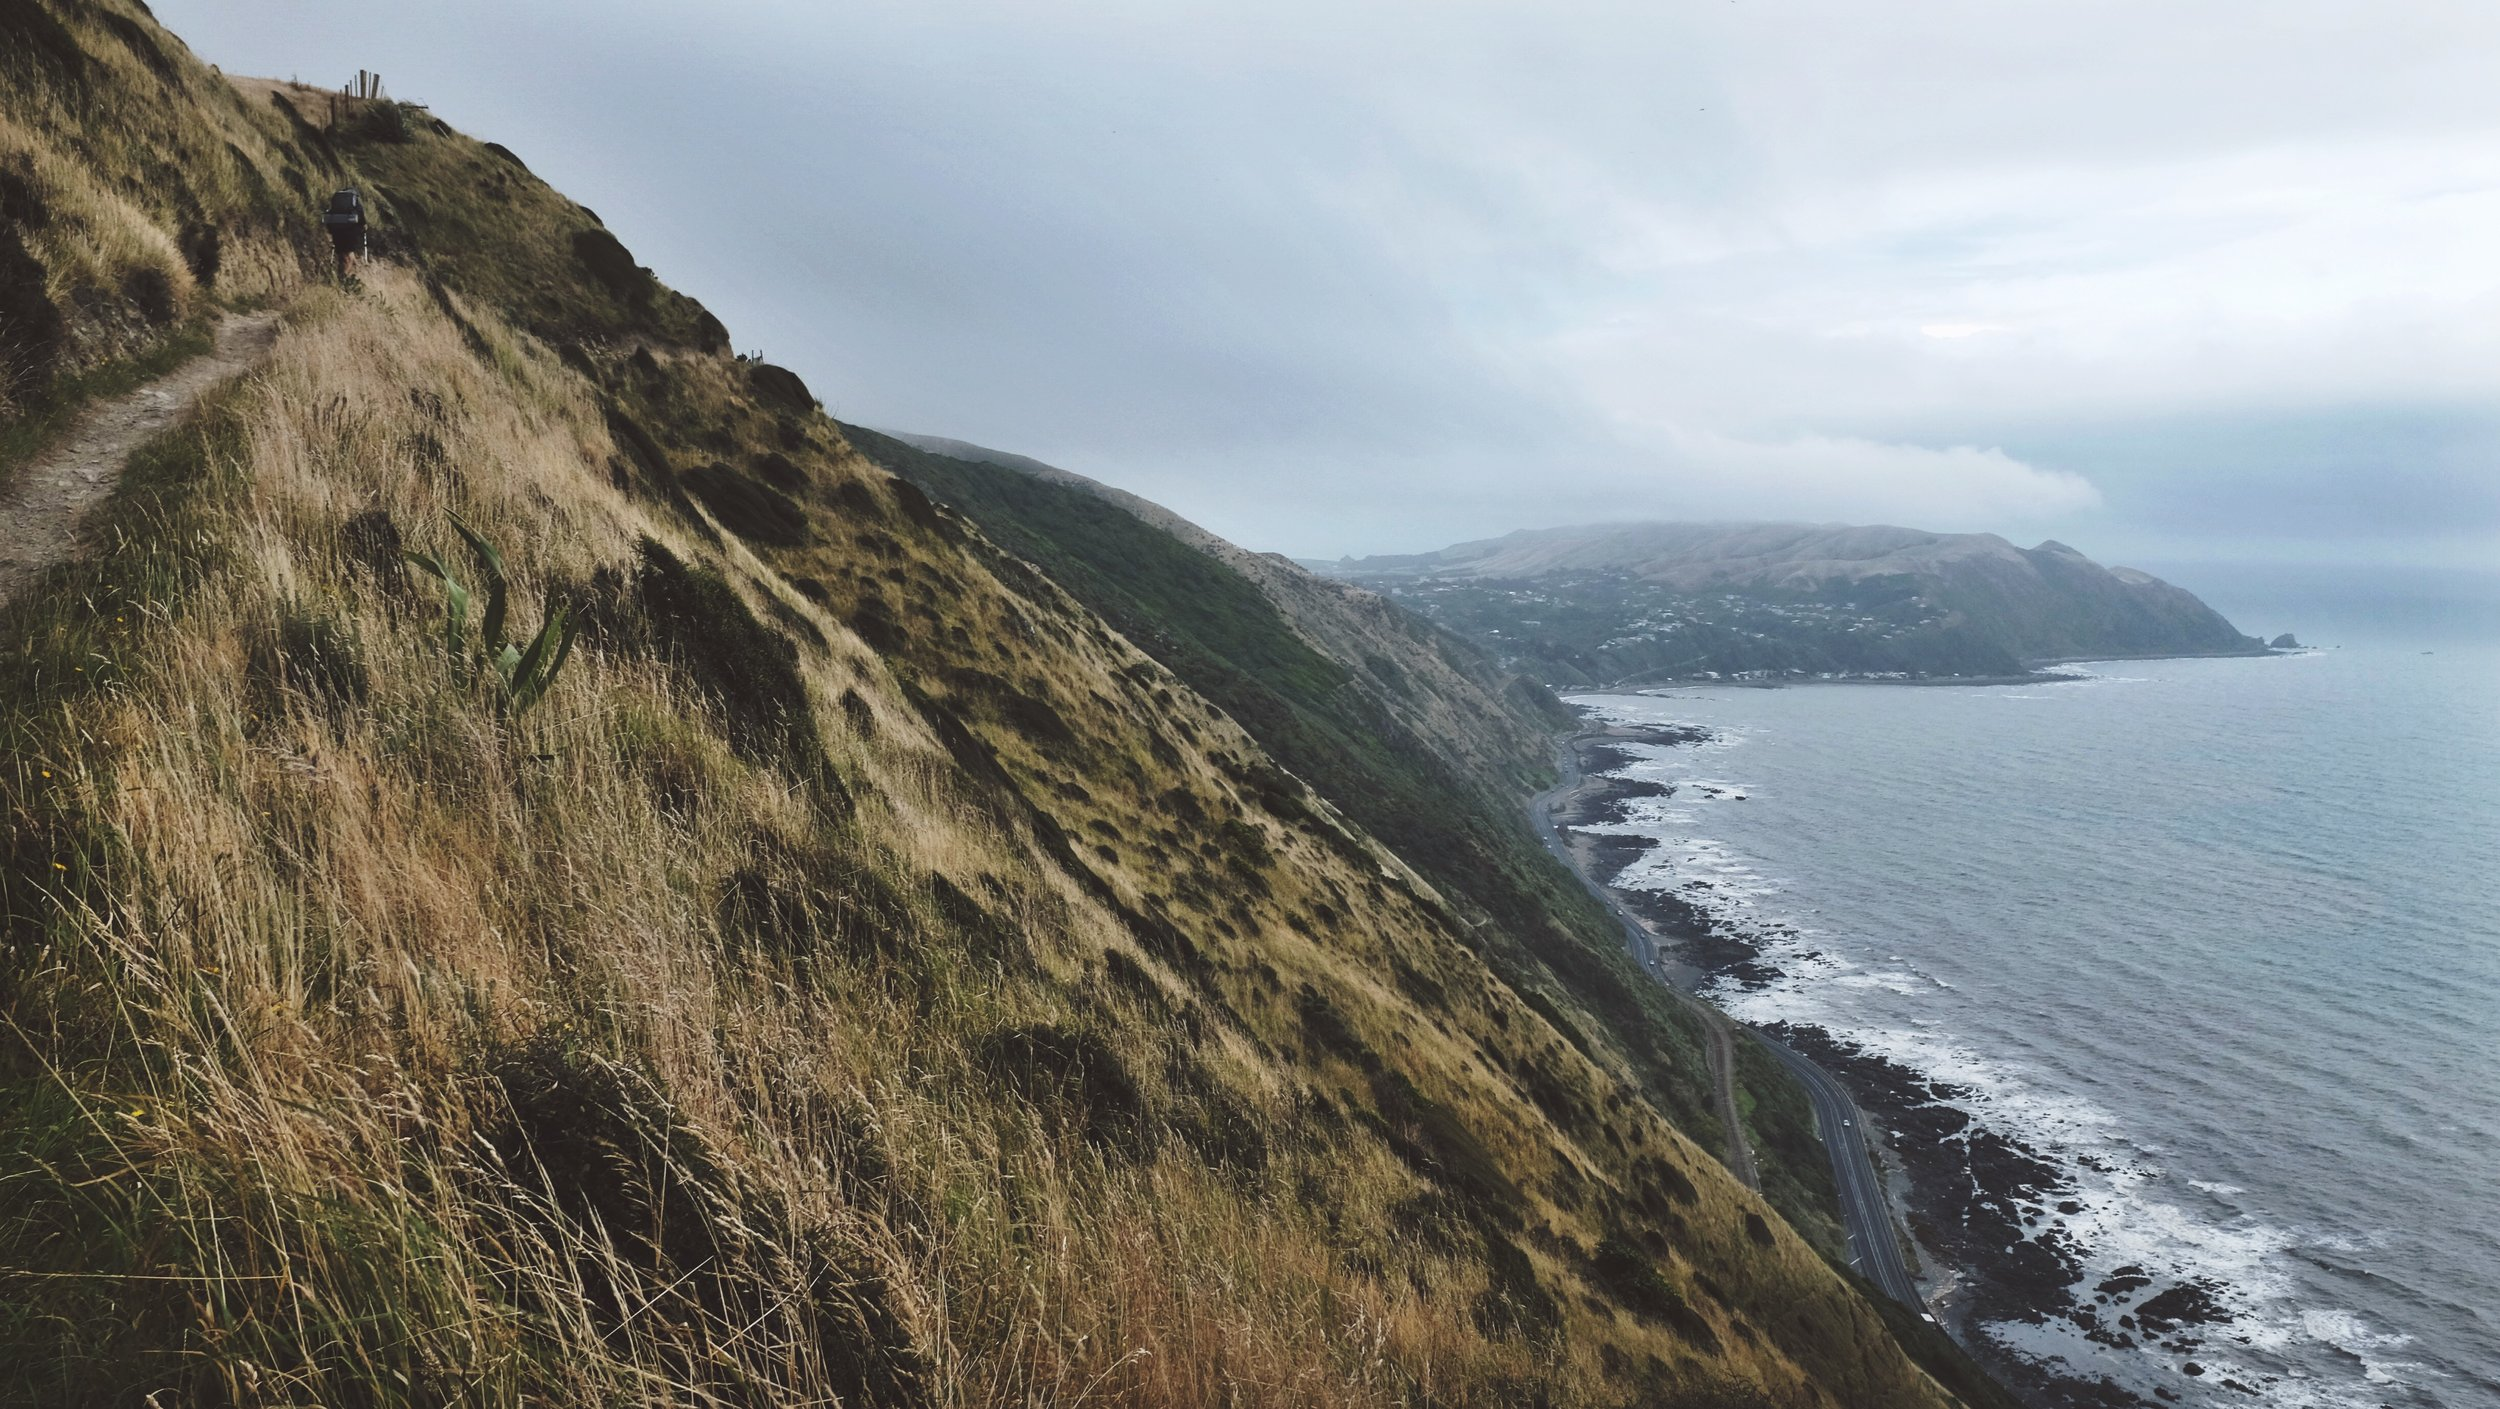 Heights of the escarpment track far above highway 1